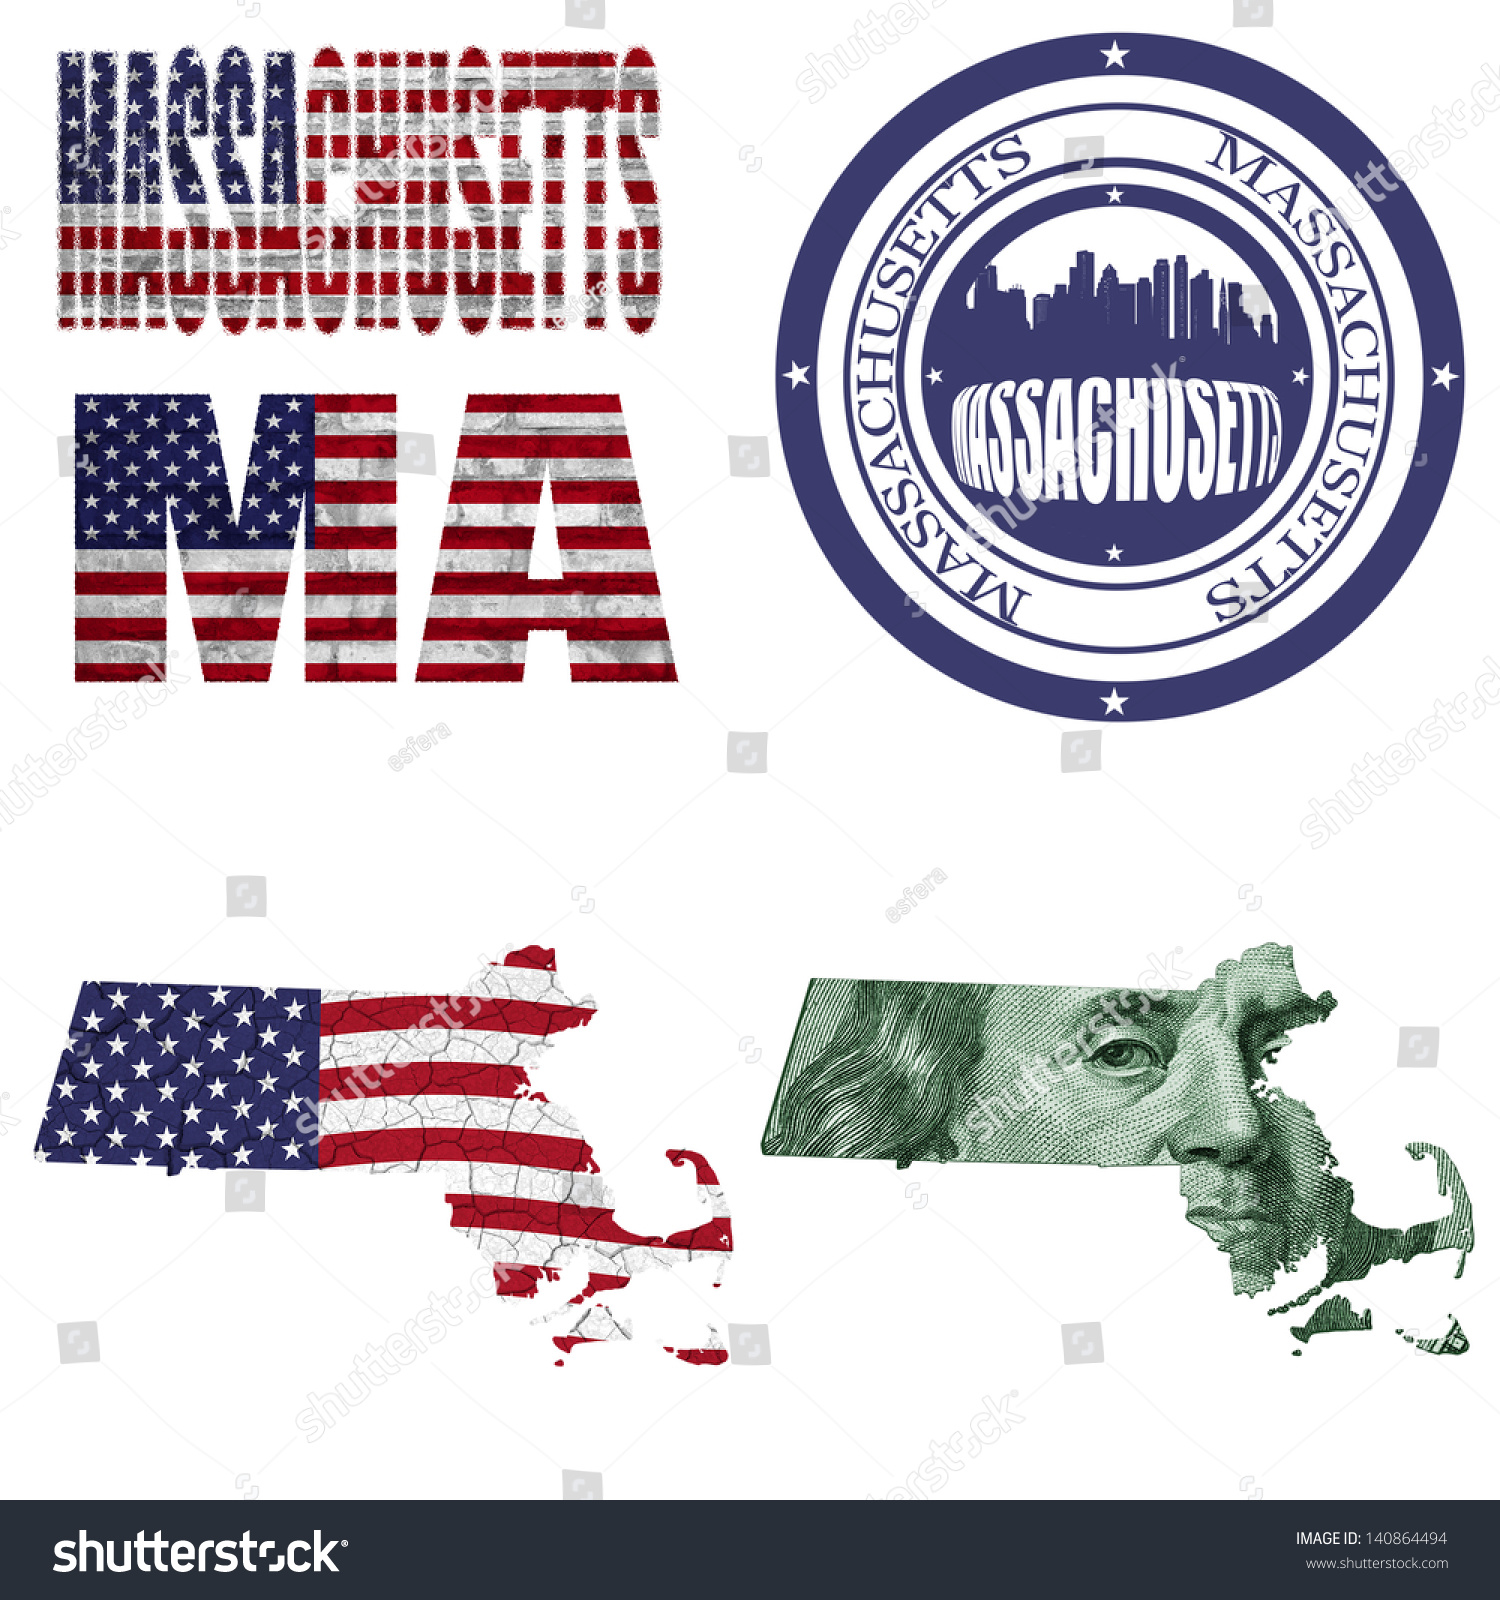 Massachusetts State Collage Map Stampwordabbreviation In Different Styles